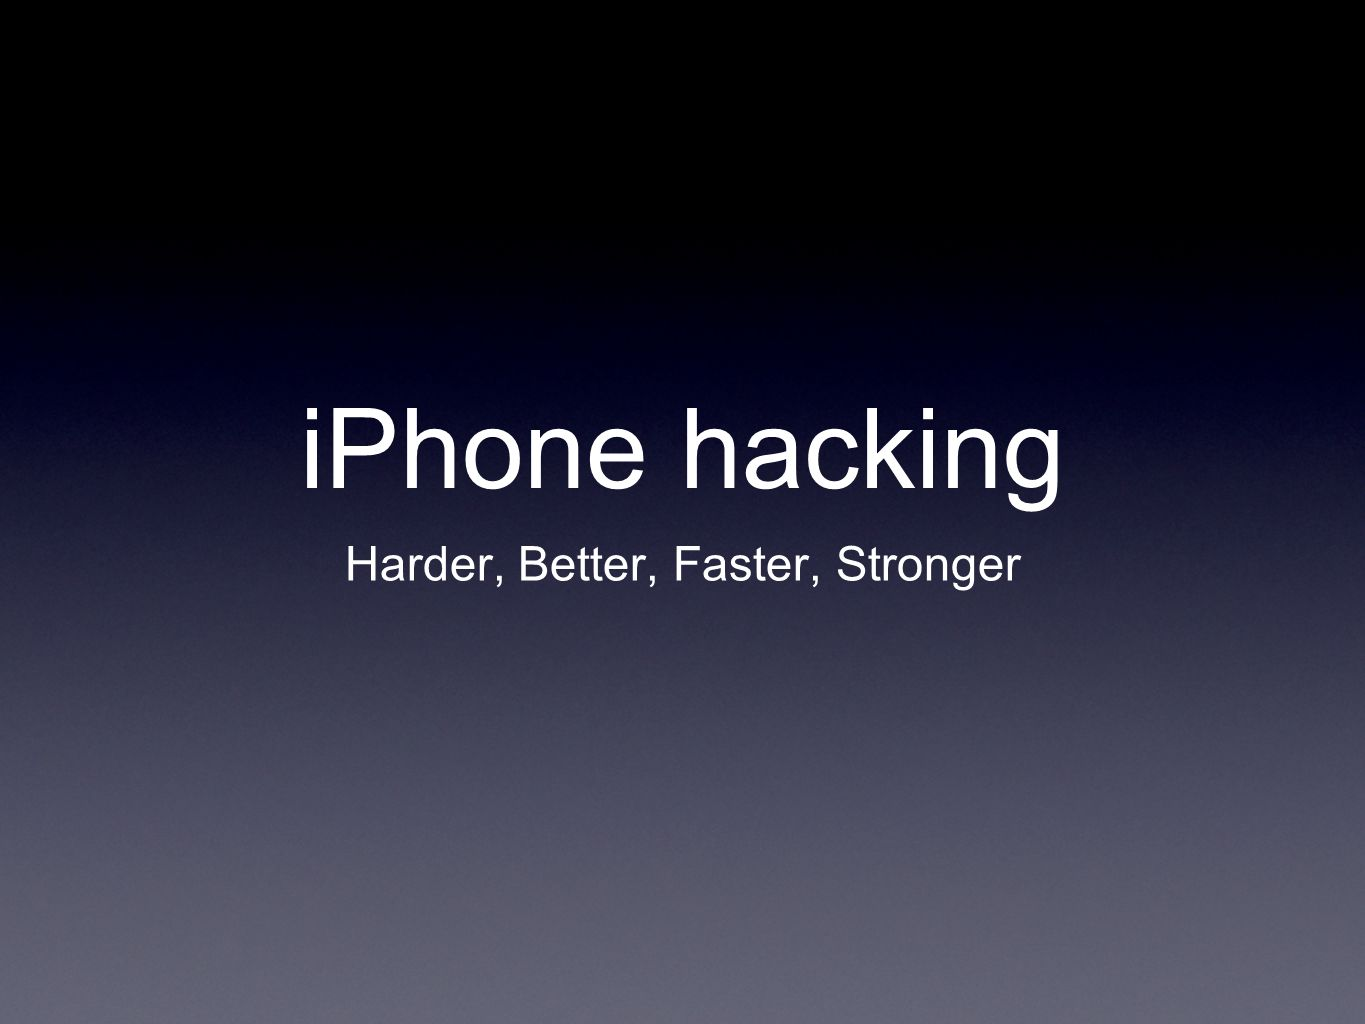 iPhone hacking Harder, Better, Faster, Stronger